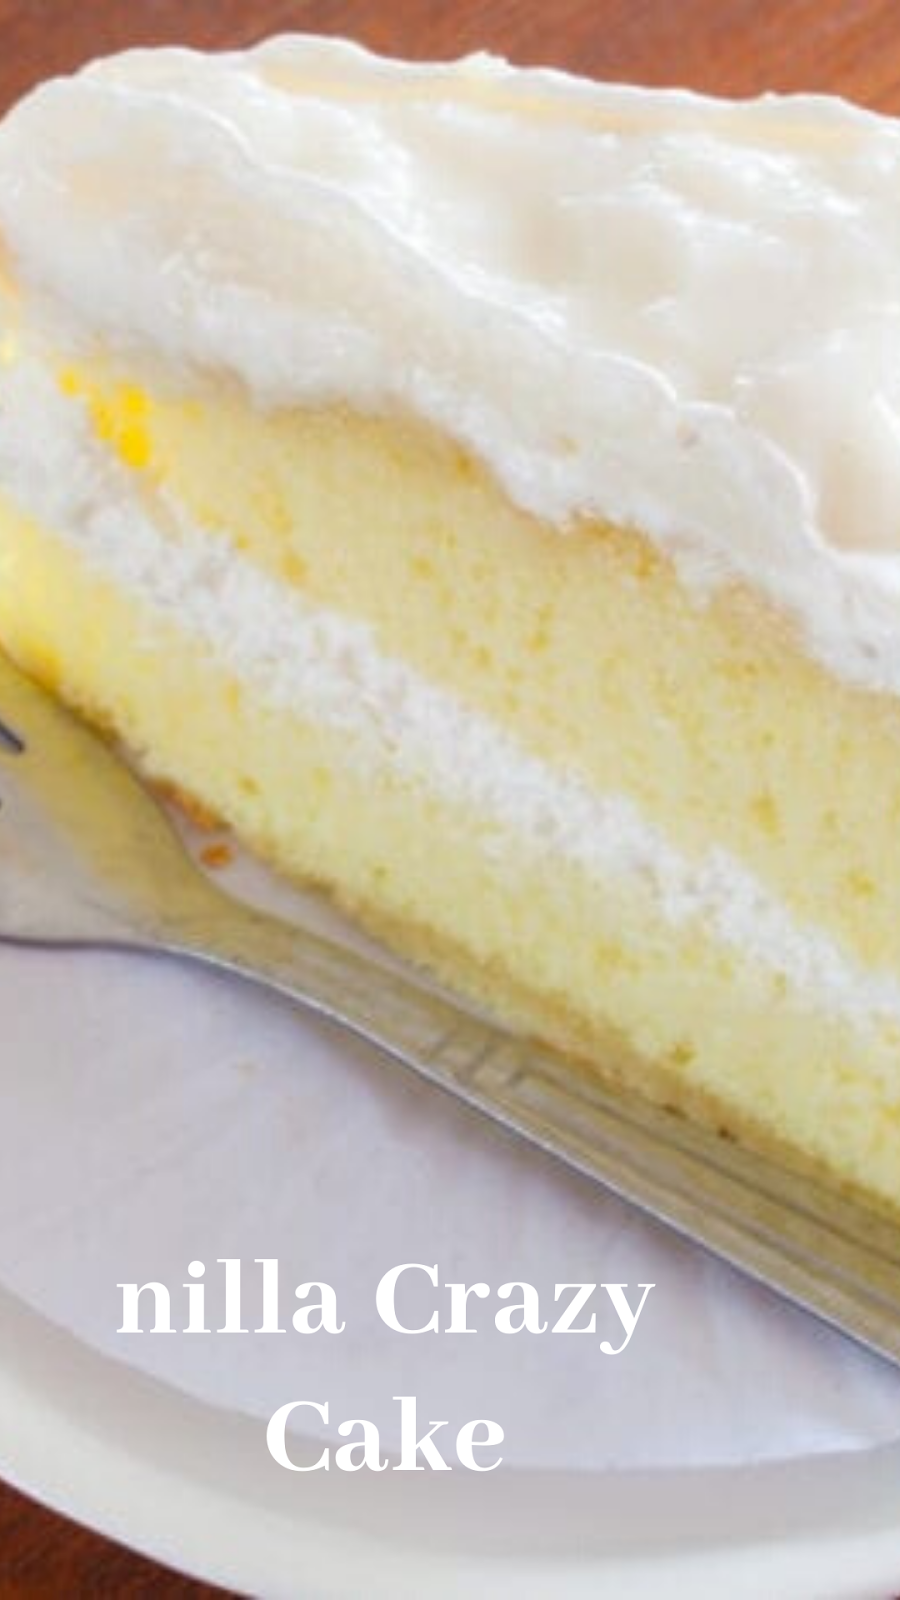 Vanilla Crazy Cake You Can Make With No Eggs, Milk, Or Butter